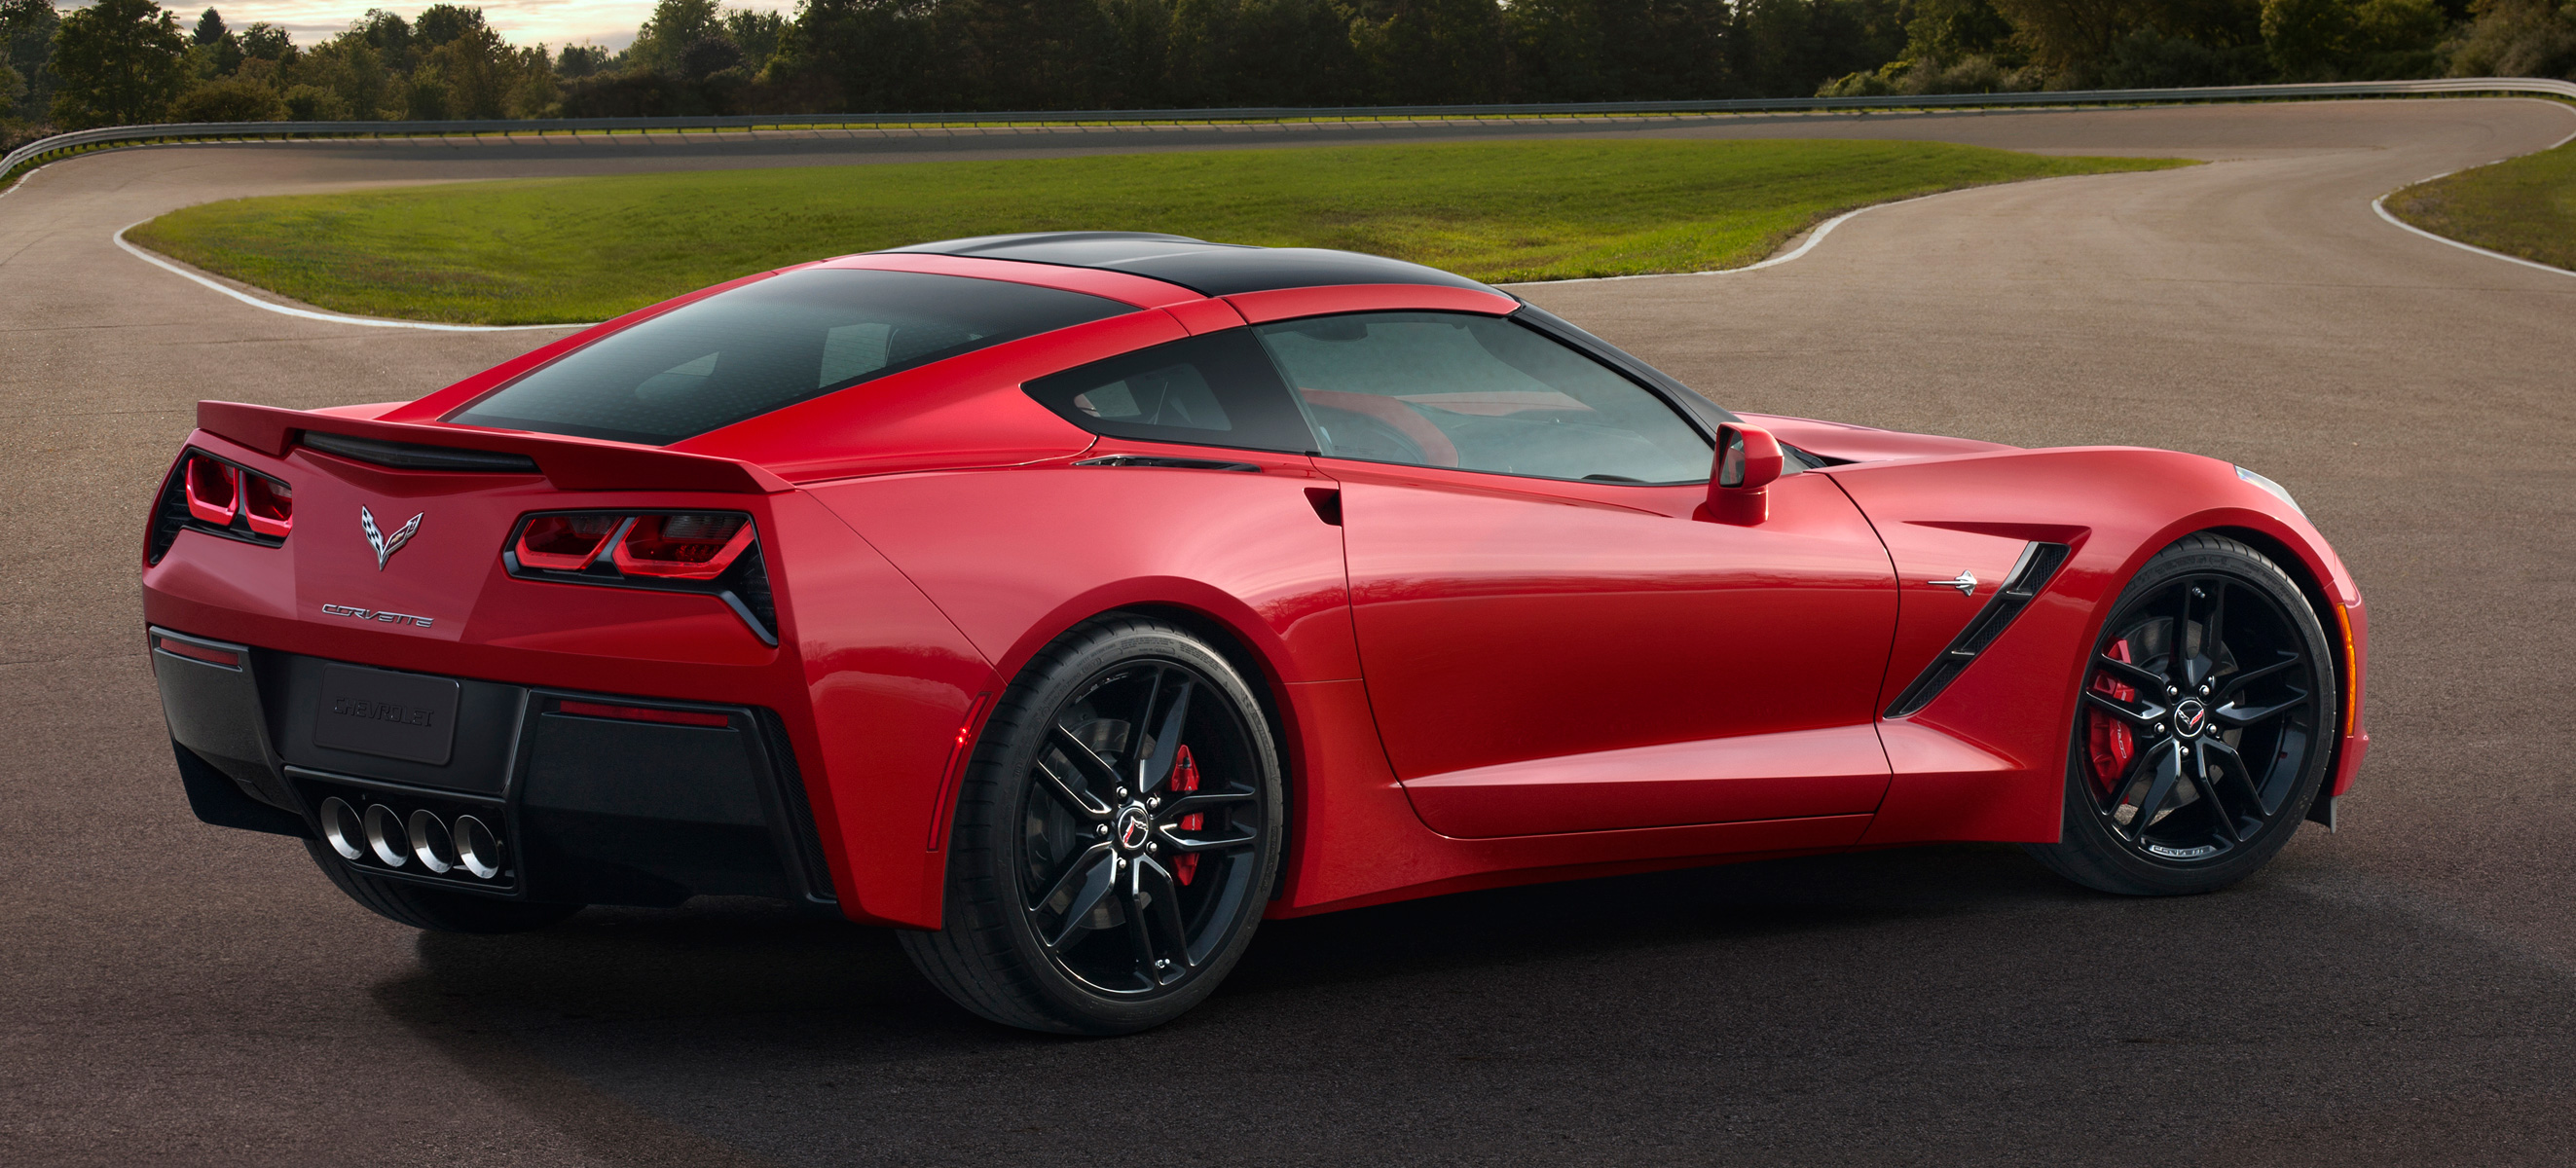 2014 Chevrolet Corvette Coupe